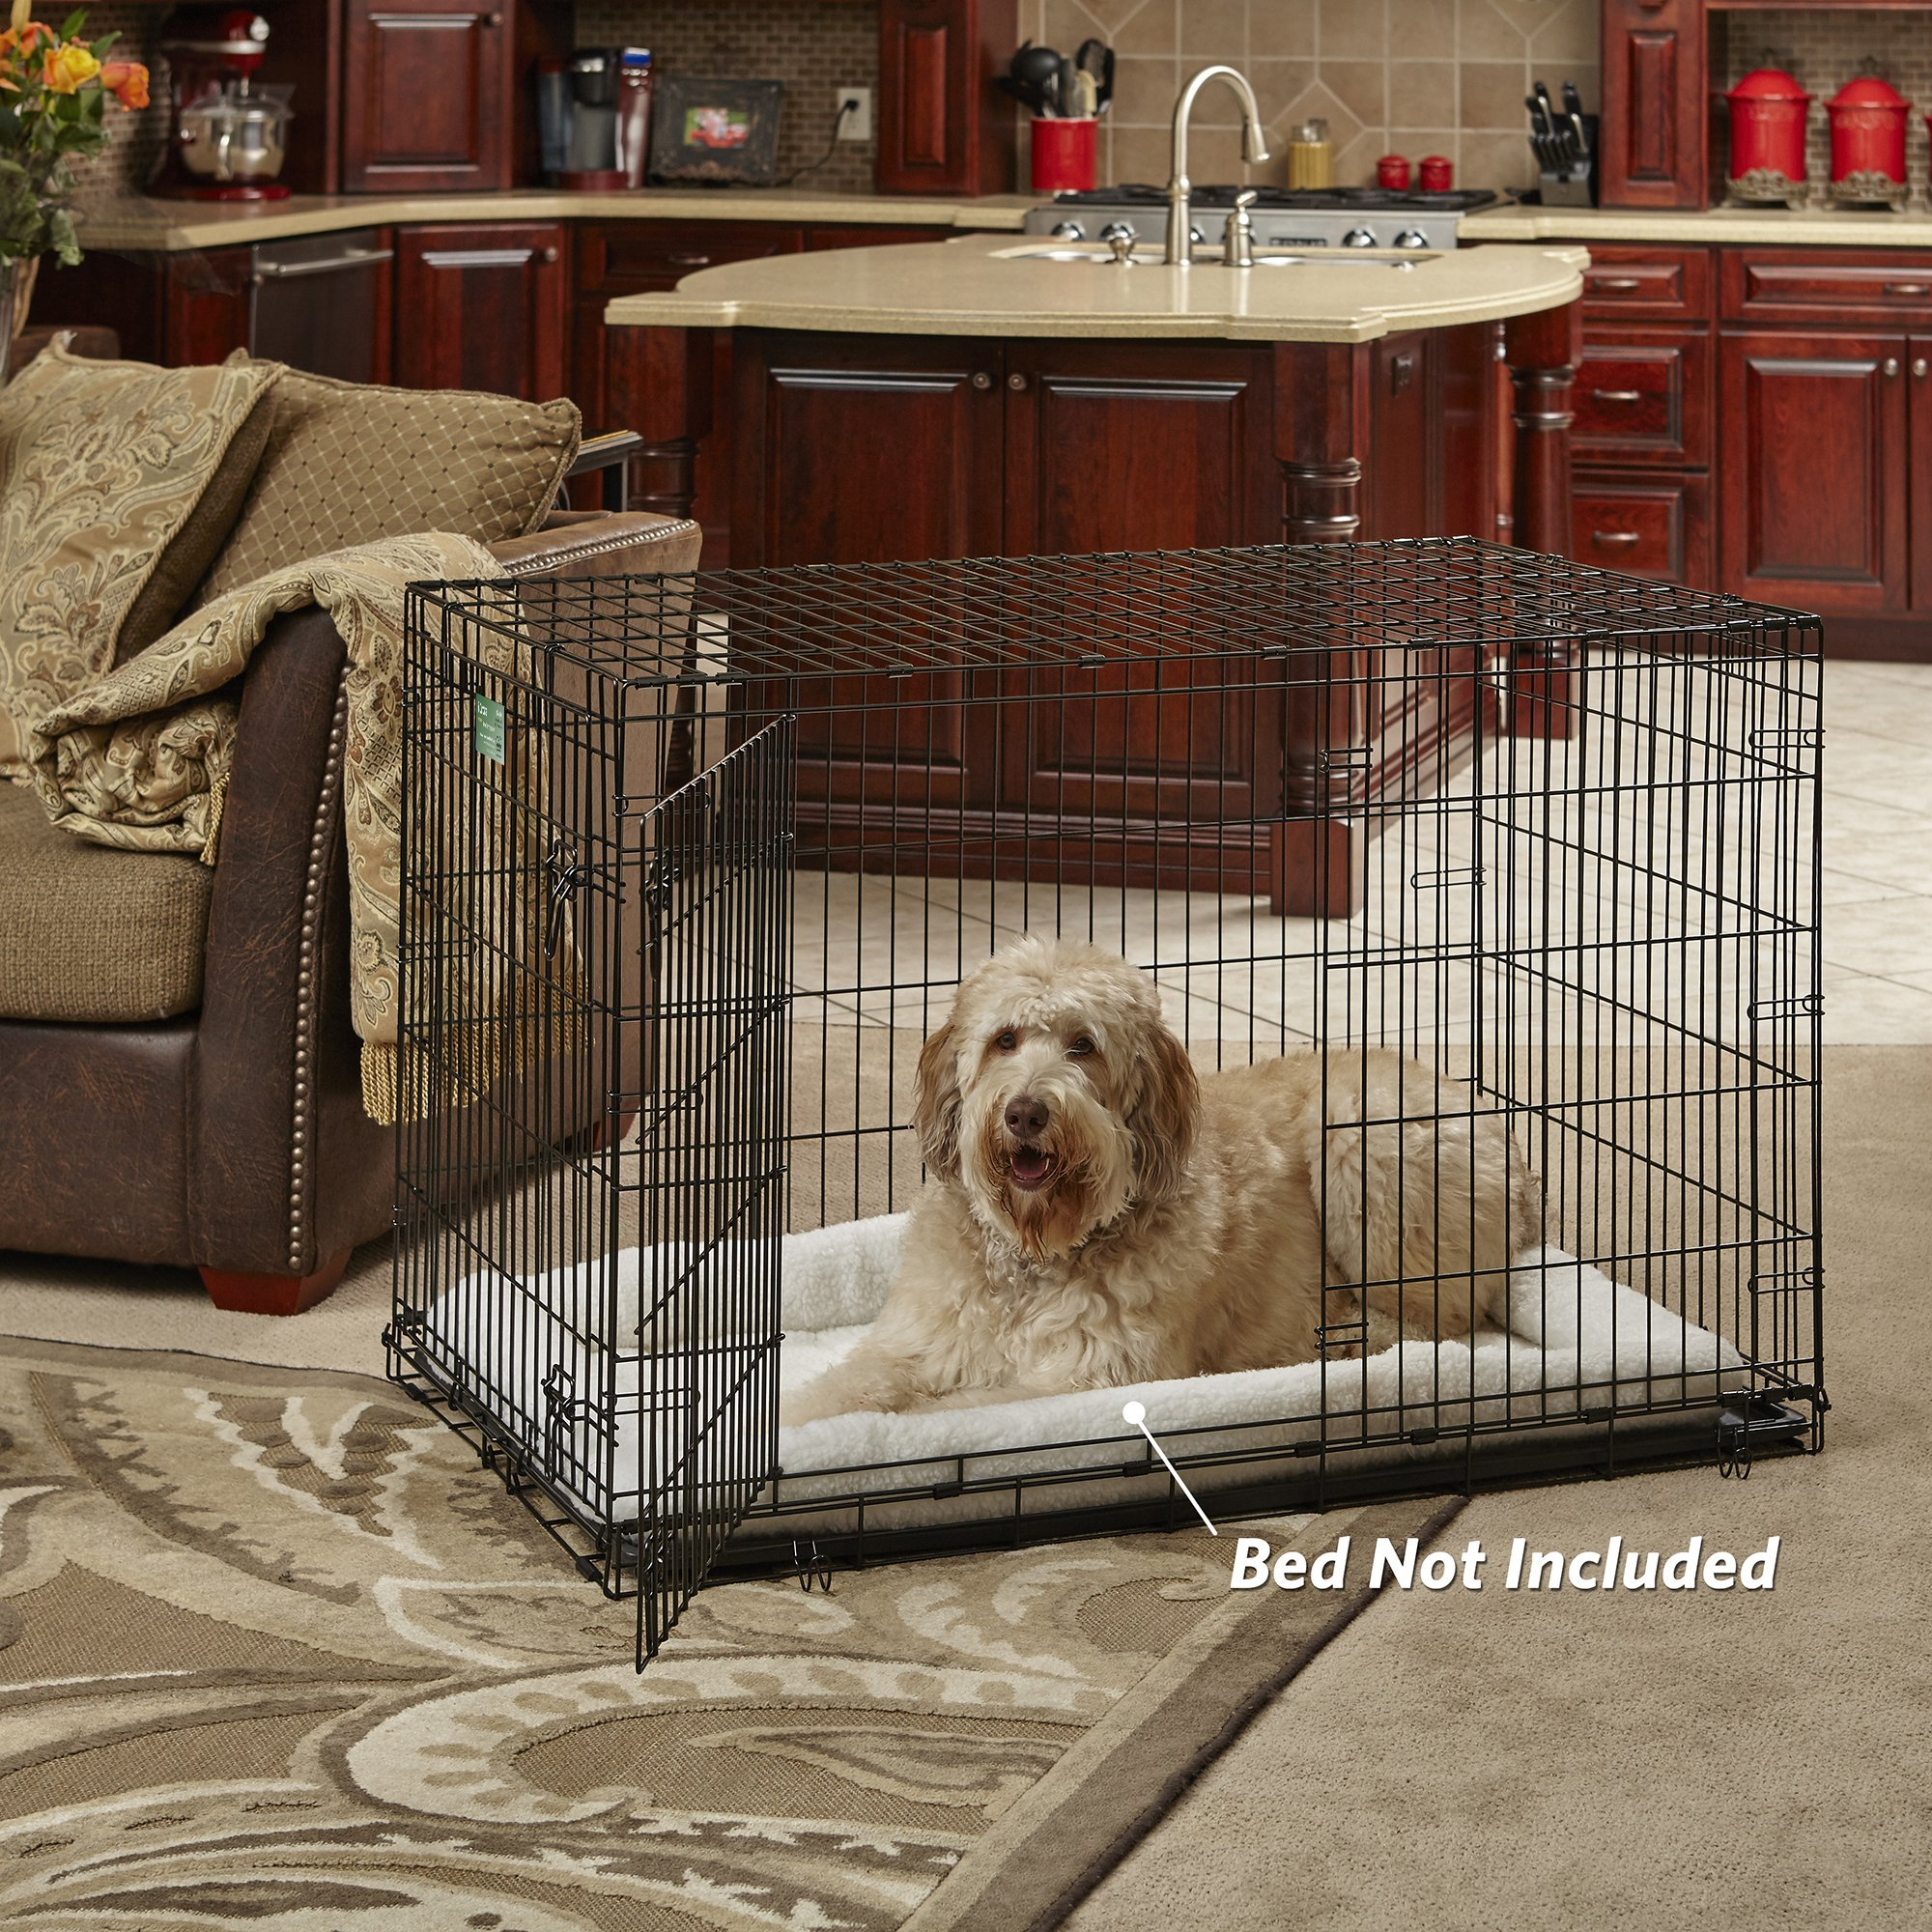 XL Dog Crate | MidWest iCrate Double Door Folding Metal Dog Crate w/ Divider Panel, Floor Protecting Feet & Leak-Proof Dog Tray | 48L x 30W x 33H Inches, XL Dog Breed, Black by MidWest Homes for Pets (Image #2)